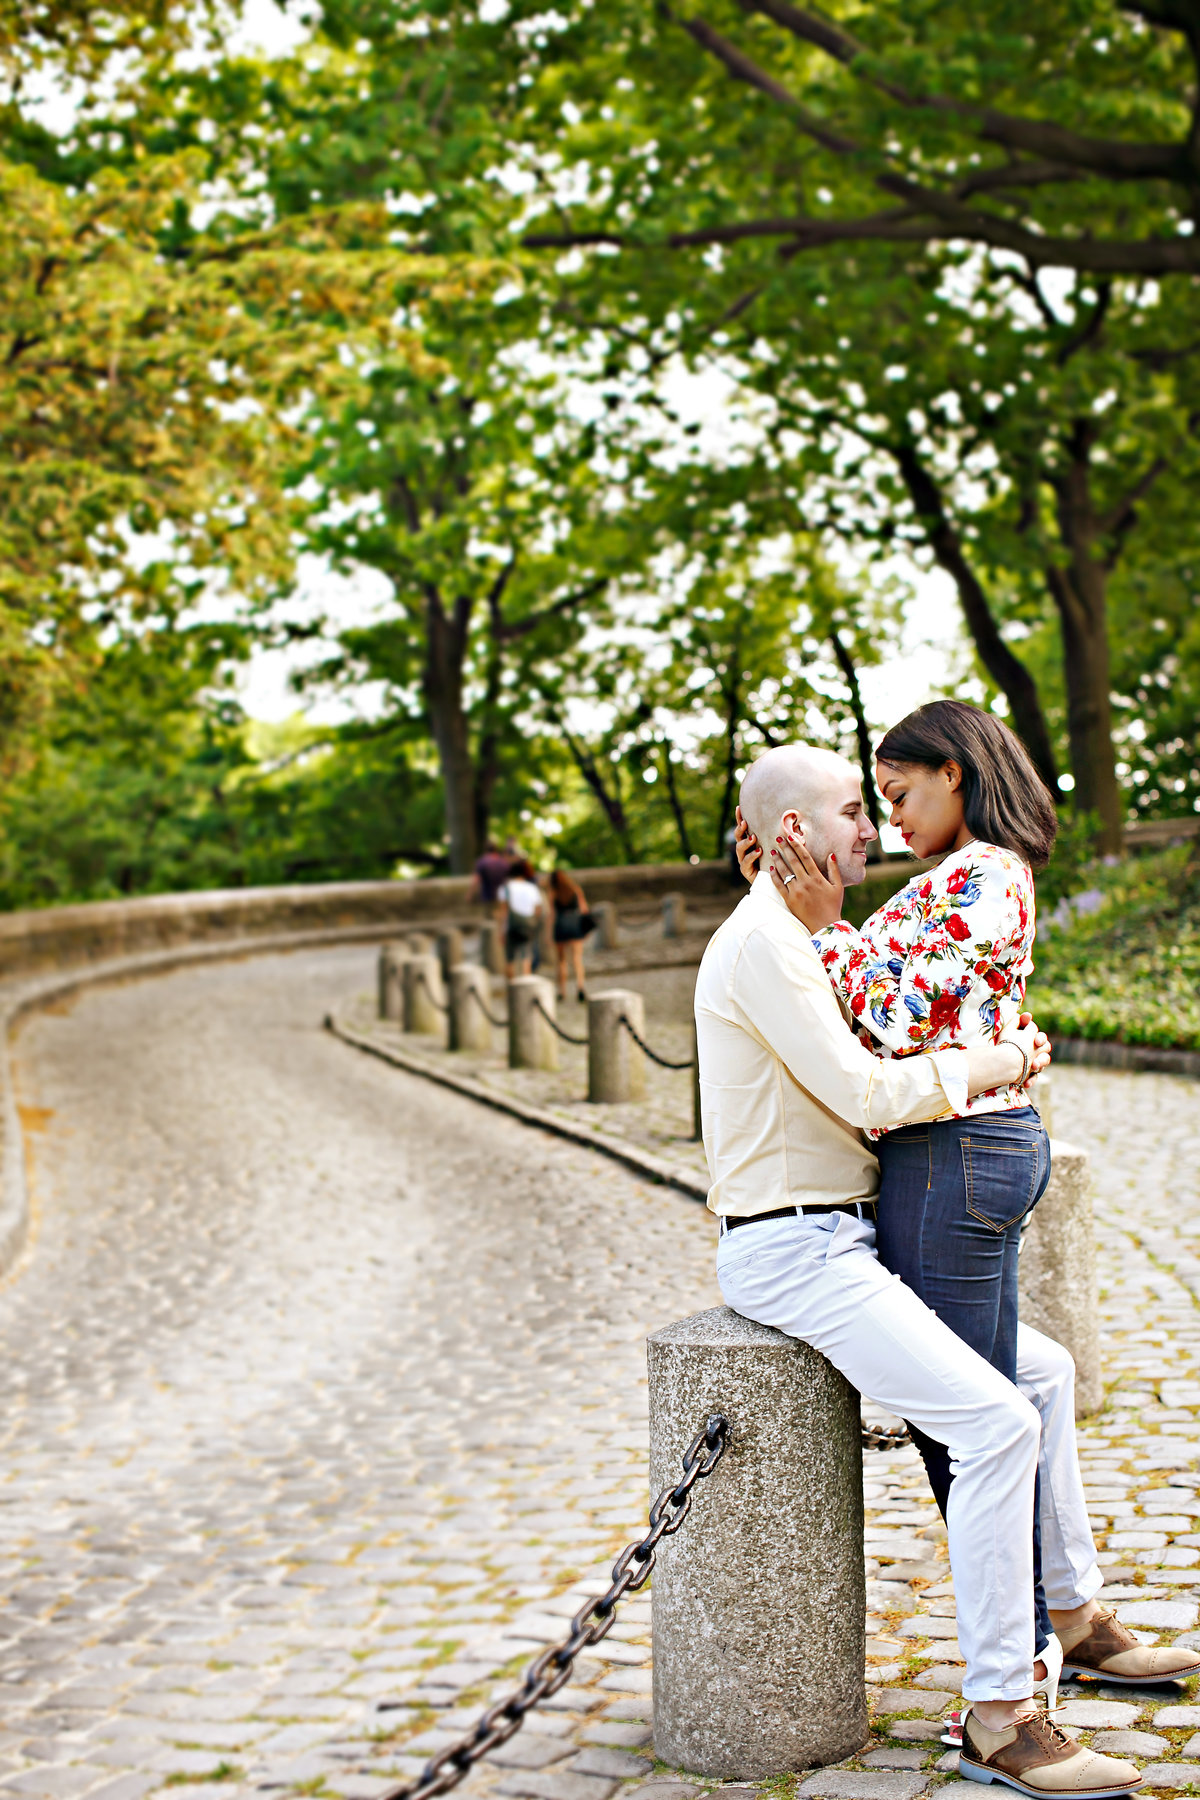 AmyAnaiz_Fort_Tyrone_Park_Cloisters_Engagement_New_York_018